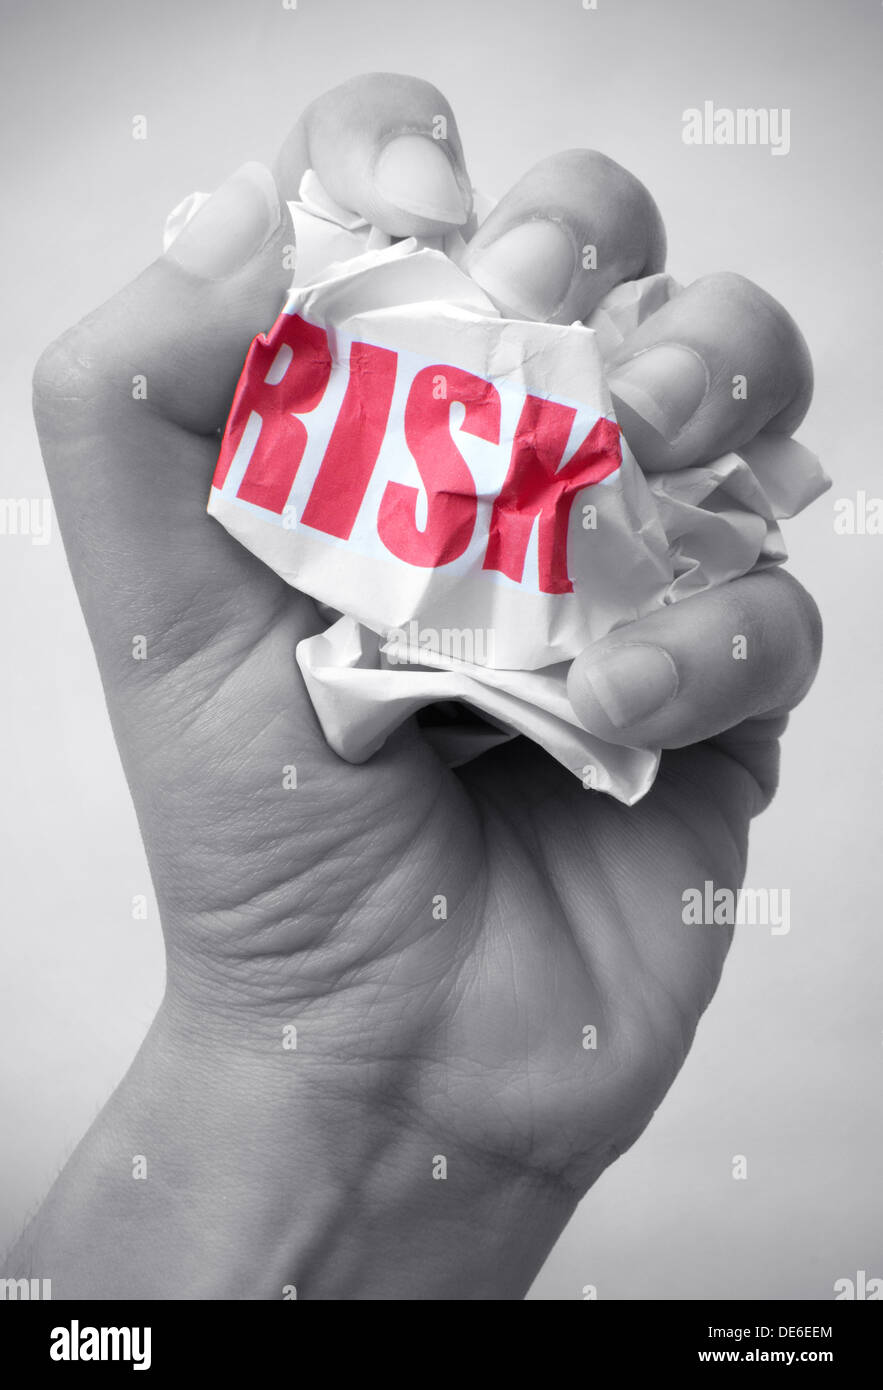 Minimizing risk concept - Stock Image